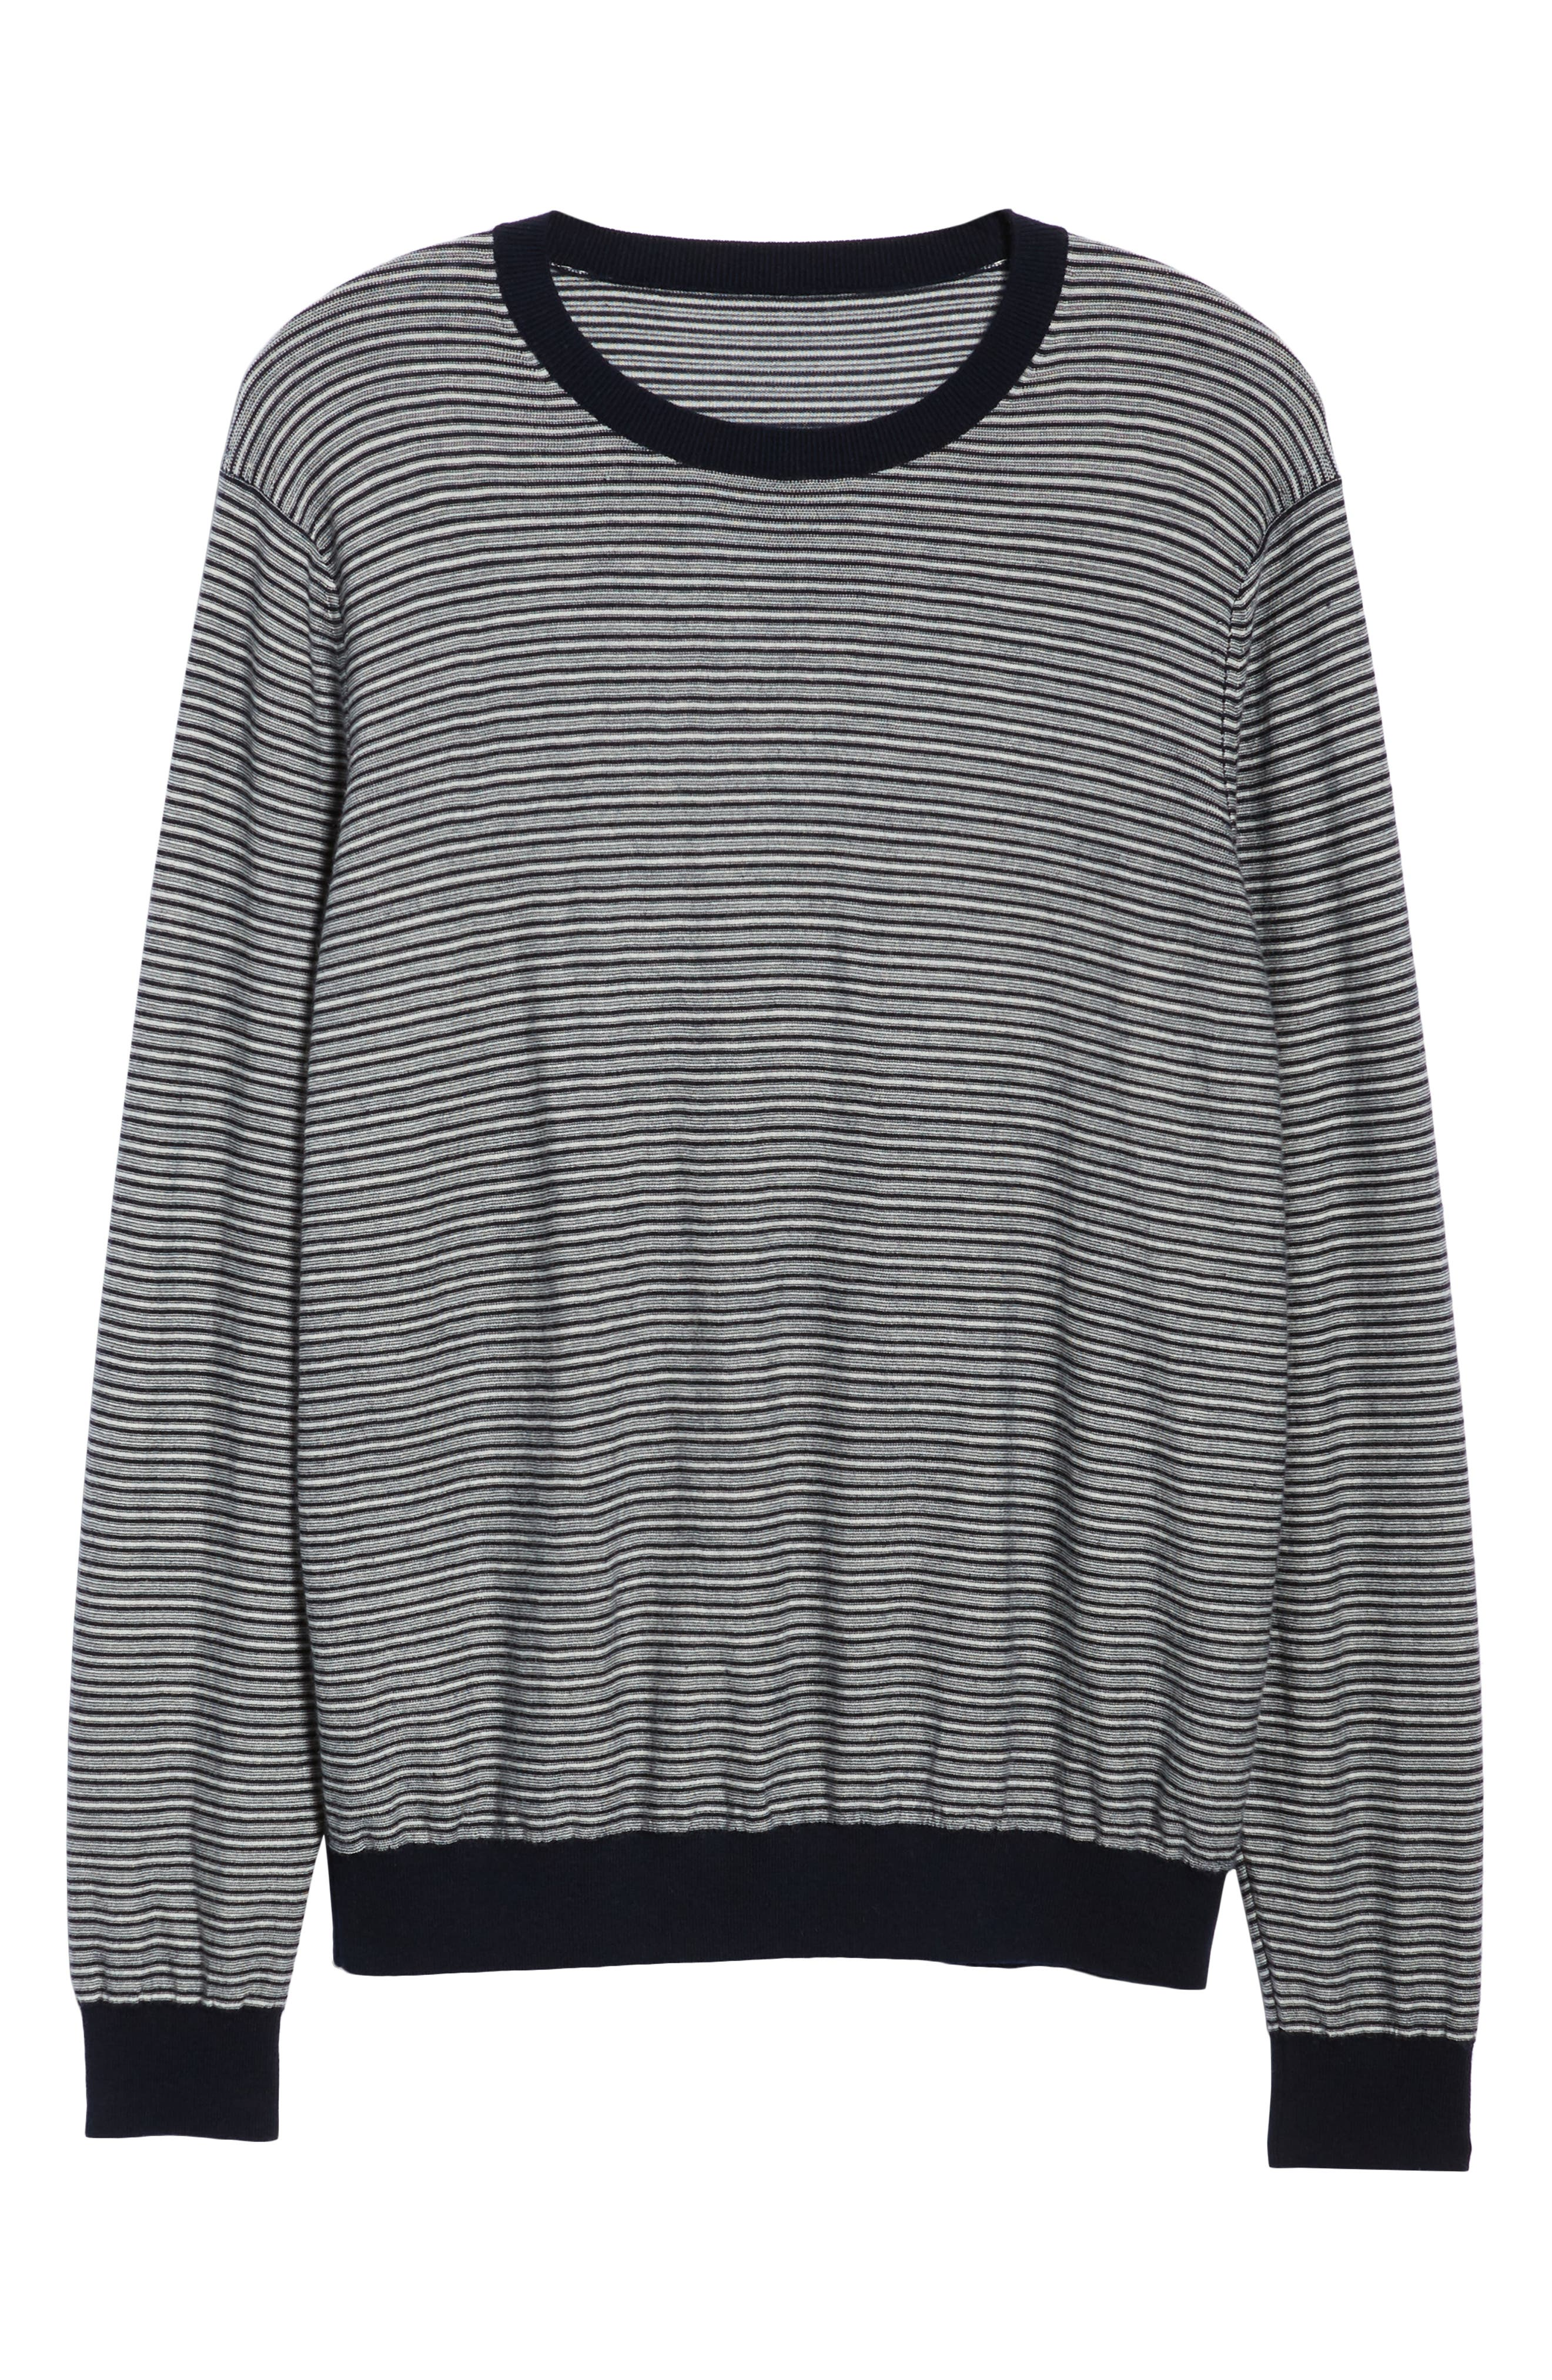 Striped Wool & Cashmere Sweater,                             Alternate thumbnail 6, color,                             400